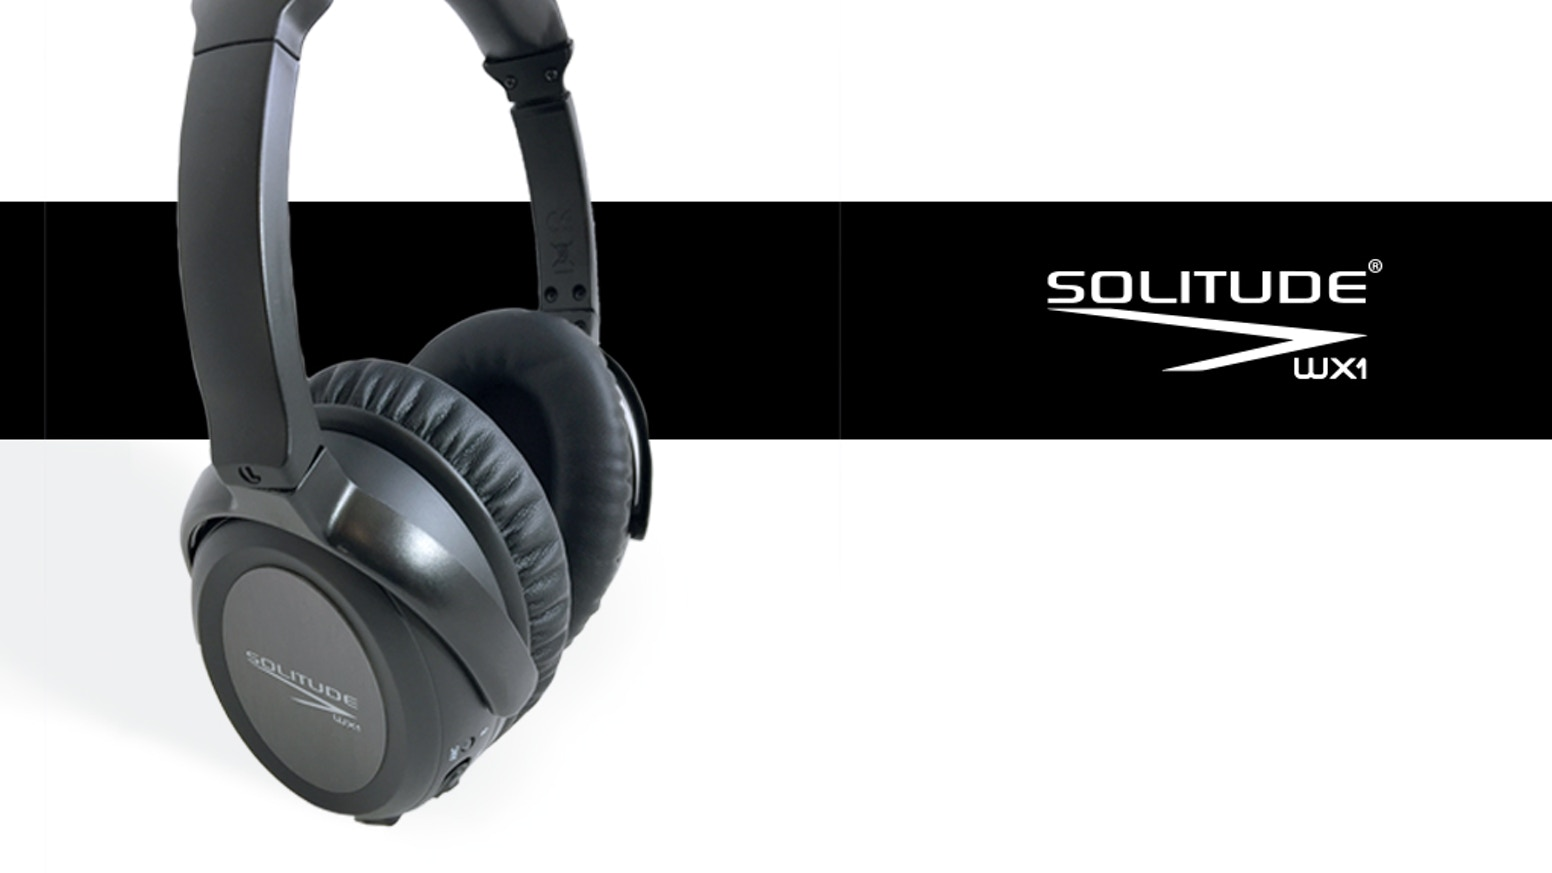 Pilot endorsed, wire-free active noise cancelling headphones with patented dual drivers which delivers a surround sound experience.THANK YOU FOR MAKING OUR CAMPAIGN SUCCESSFUL! Visit our site for more information on the Solitude WX1.